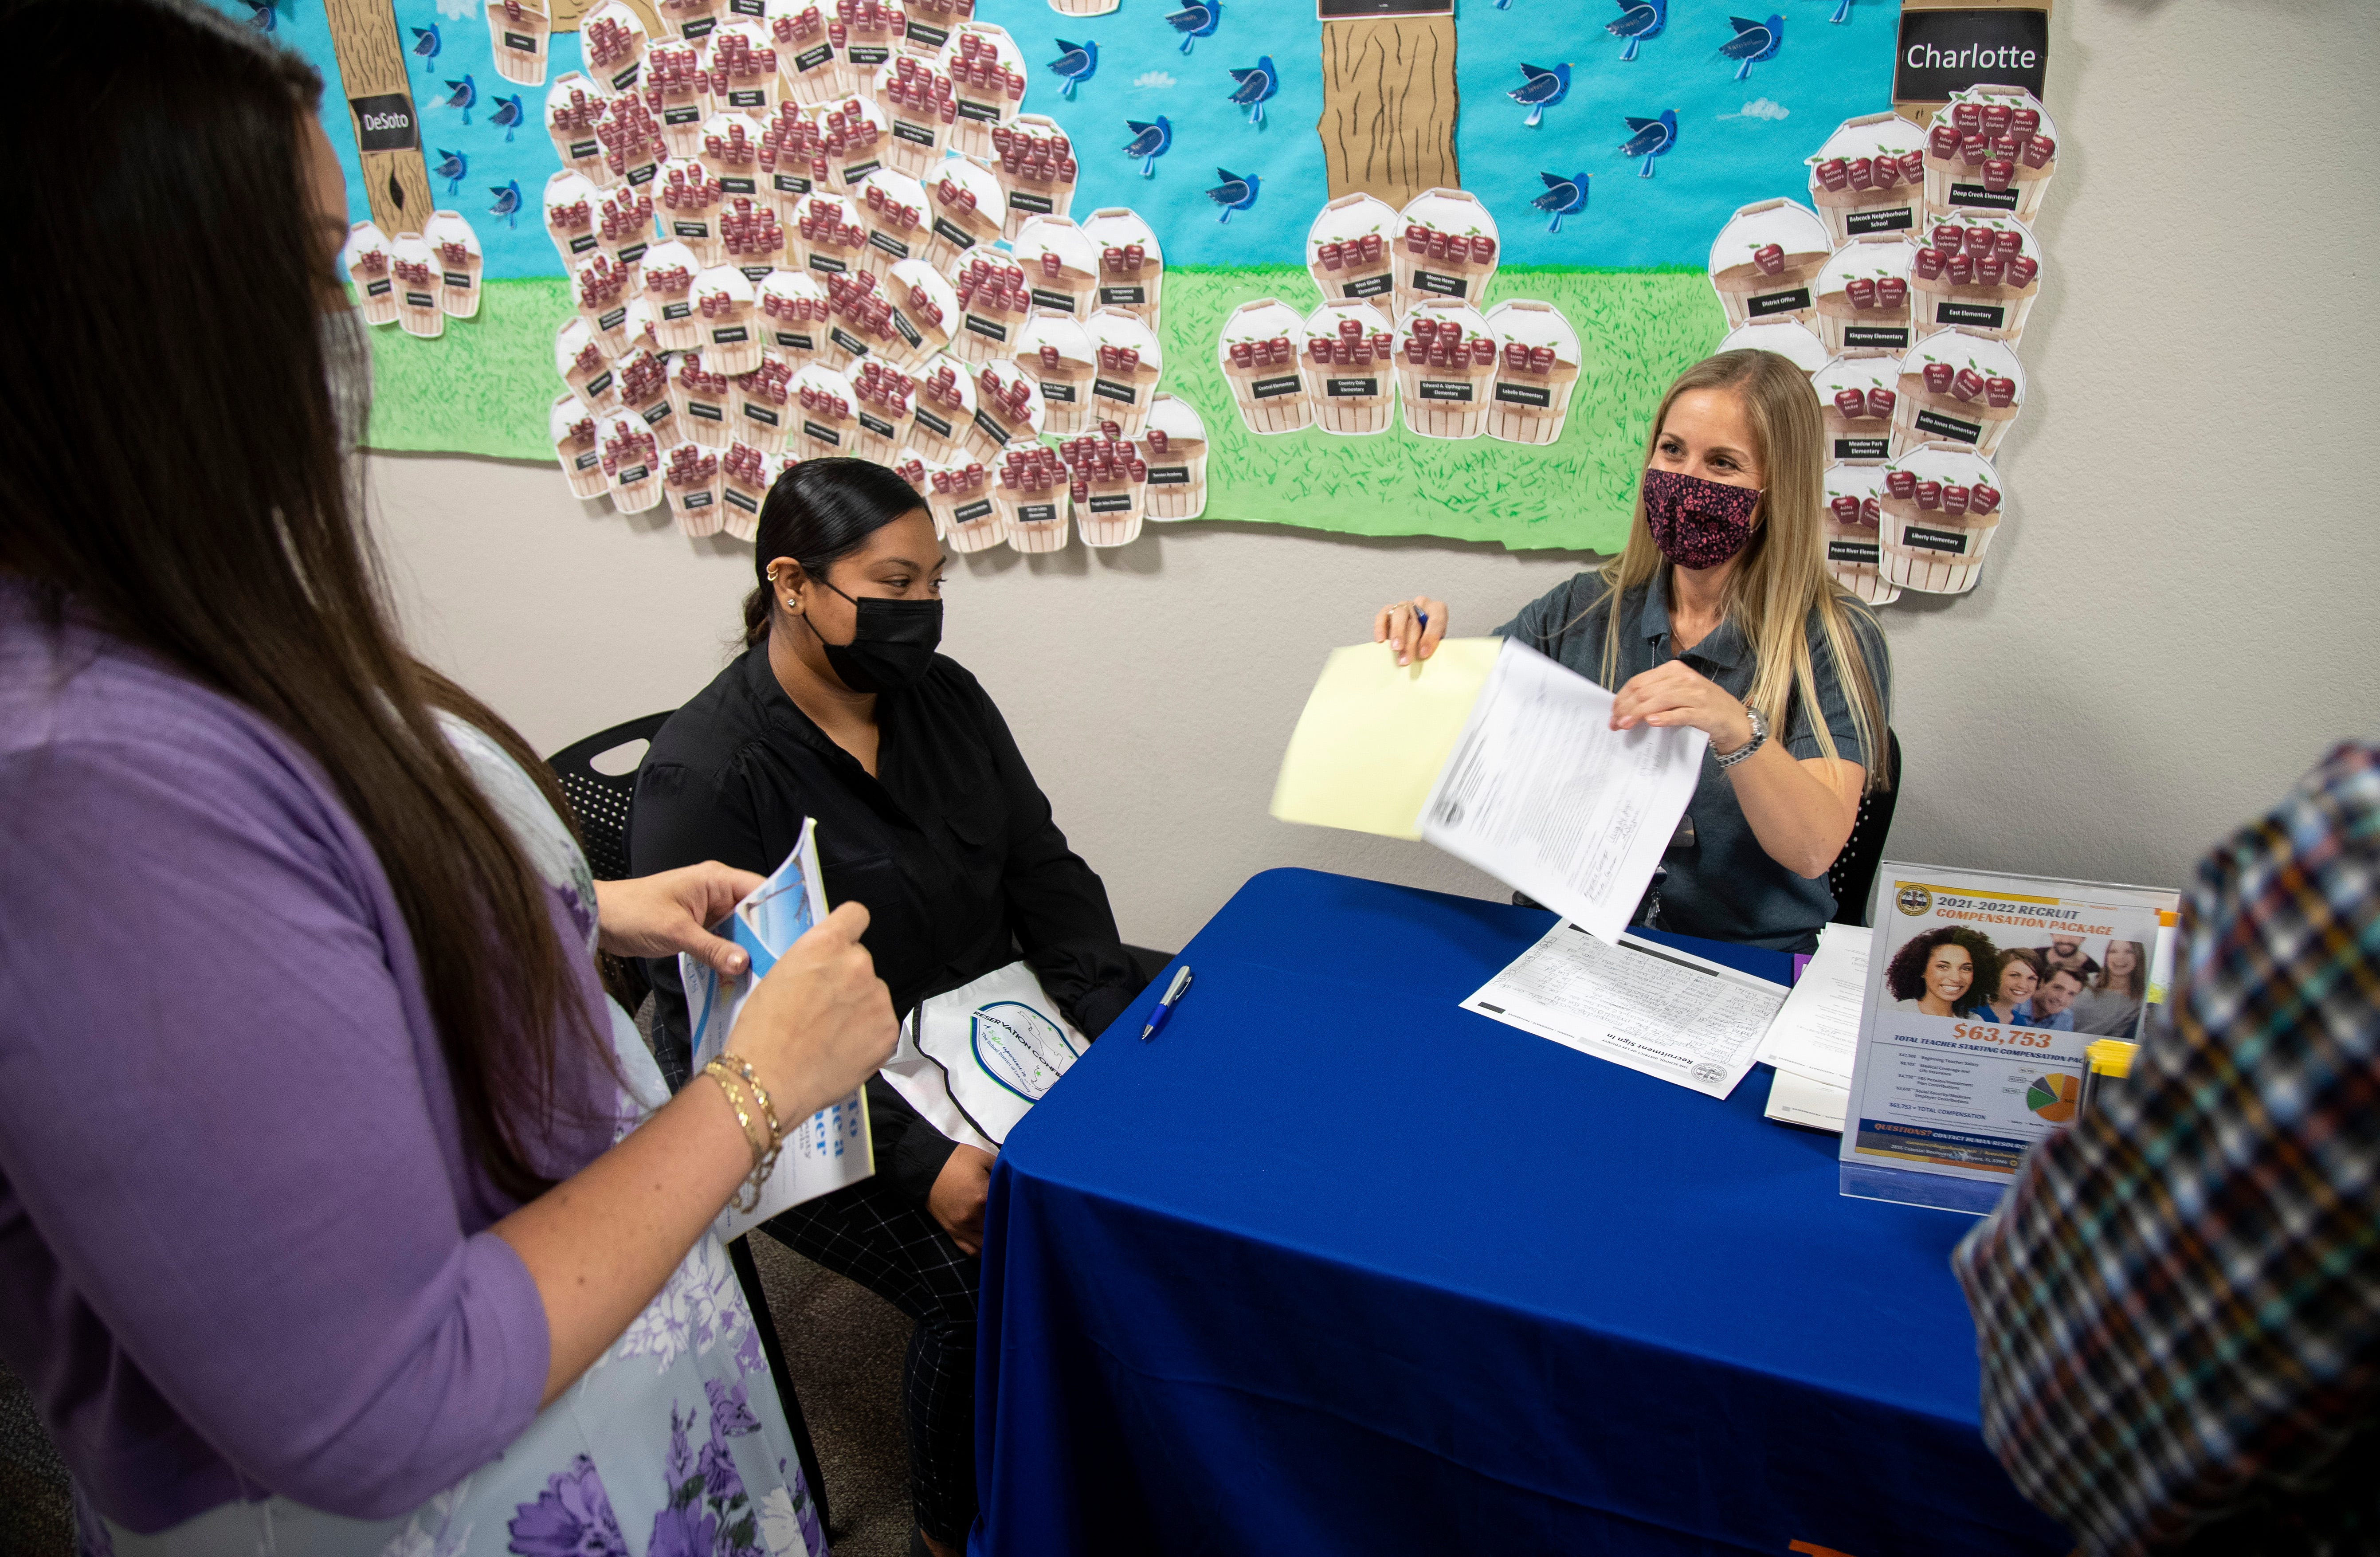 Soon-to-be teachers from Florida SouthWestern State College feel ready for classroom 2